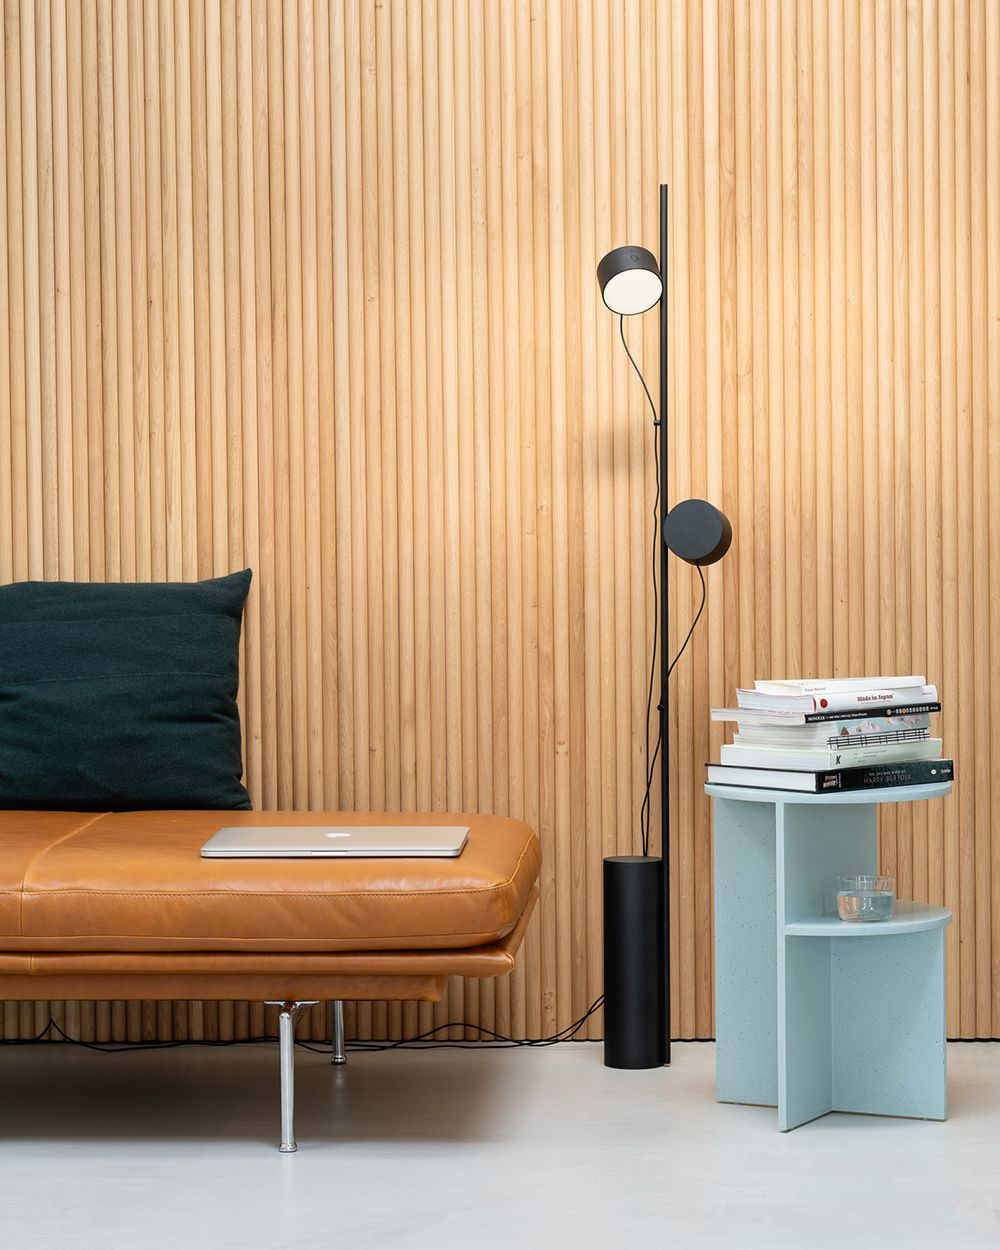 The Post Floor Lamp Is An Innovative Modular Lighting Design With An Archetypal Appearance Gr In 2020 Scandinavian Furniture Design Living Room Inspiration Home Decor